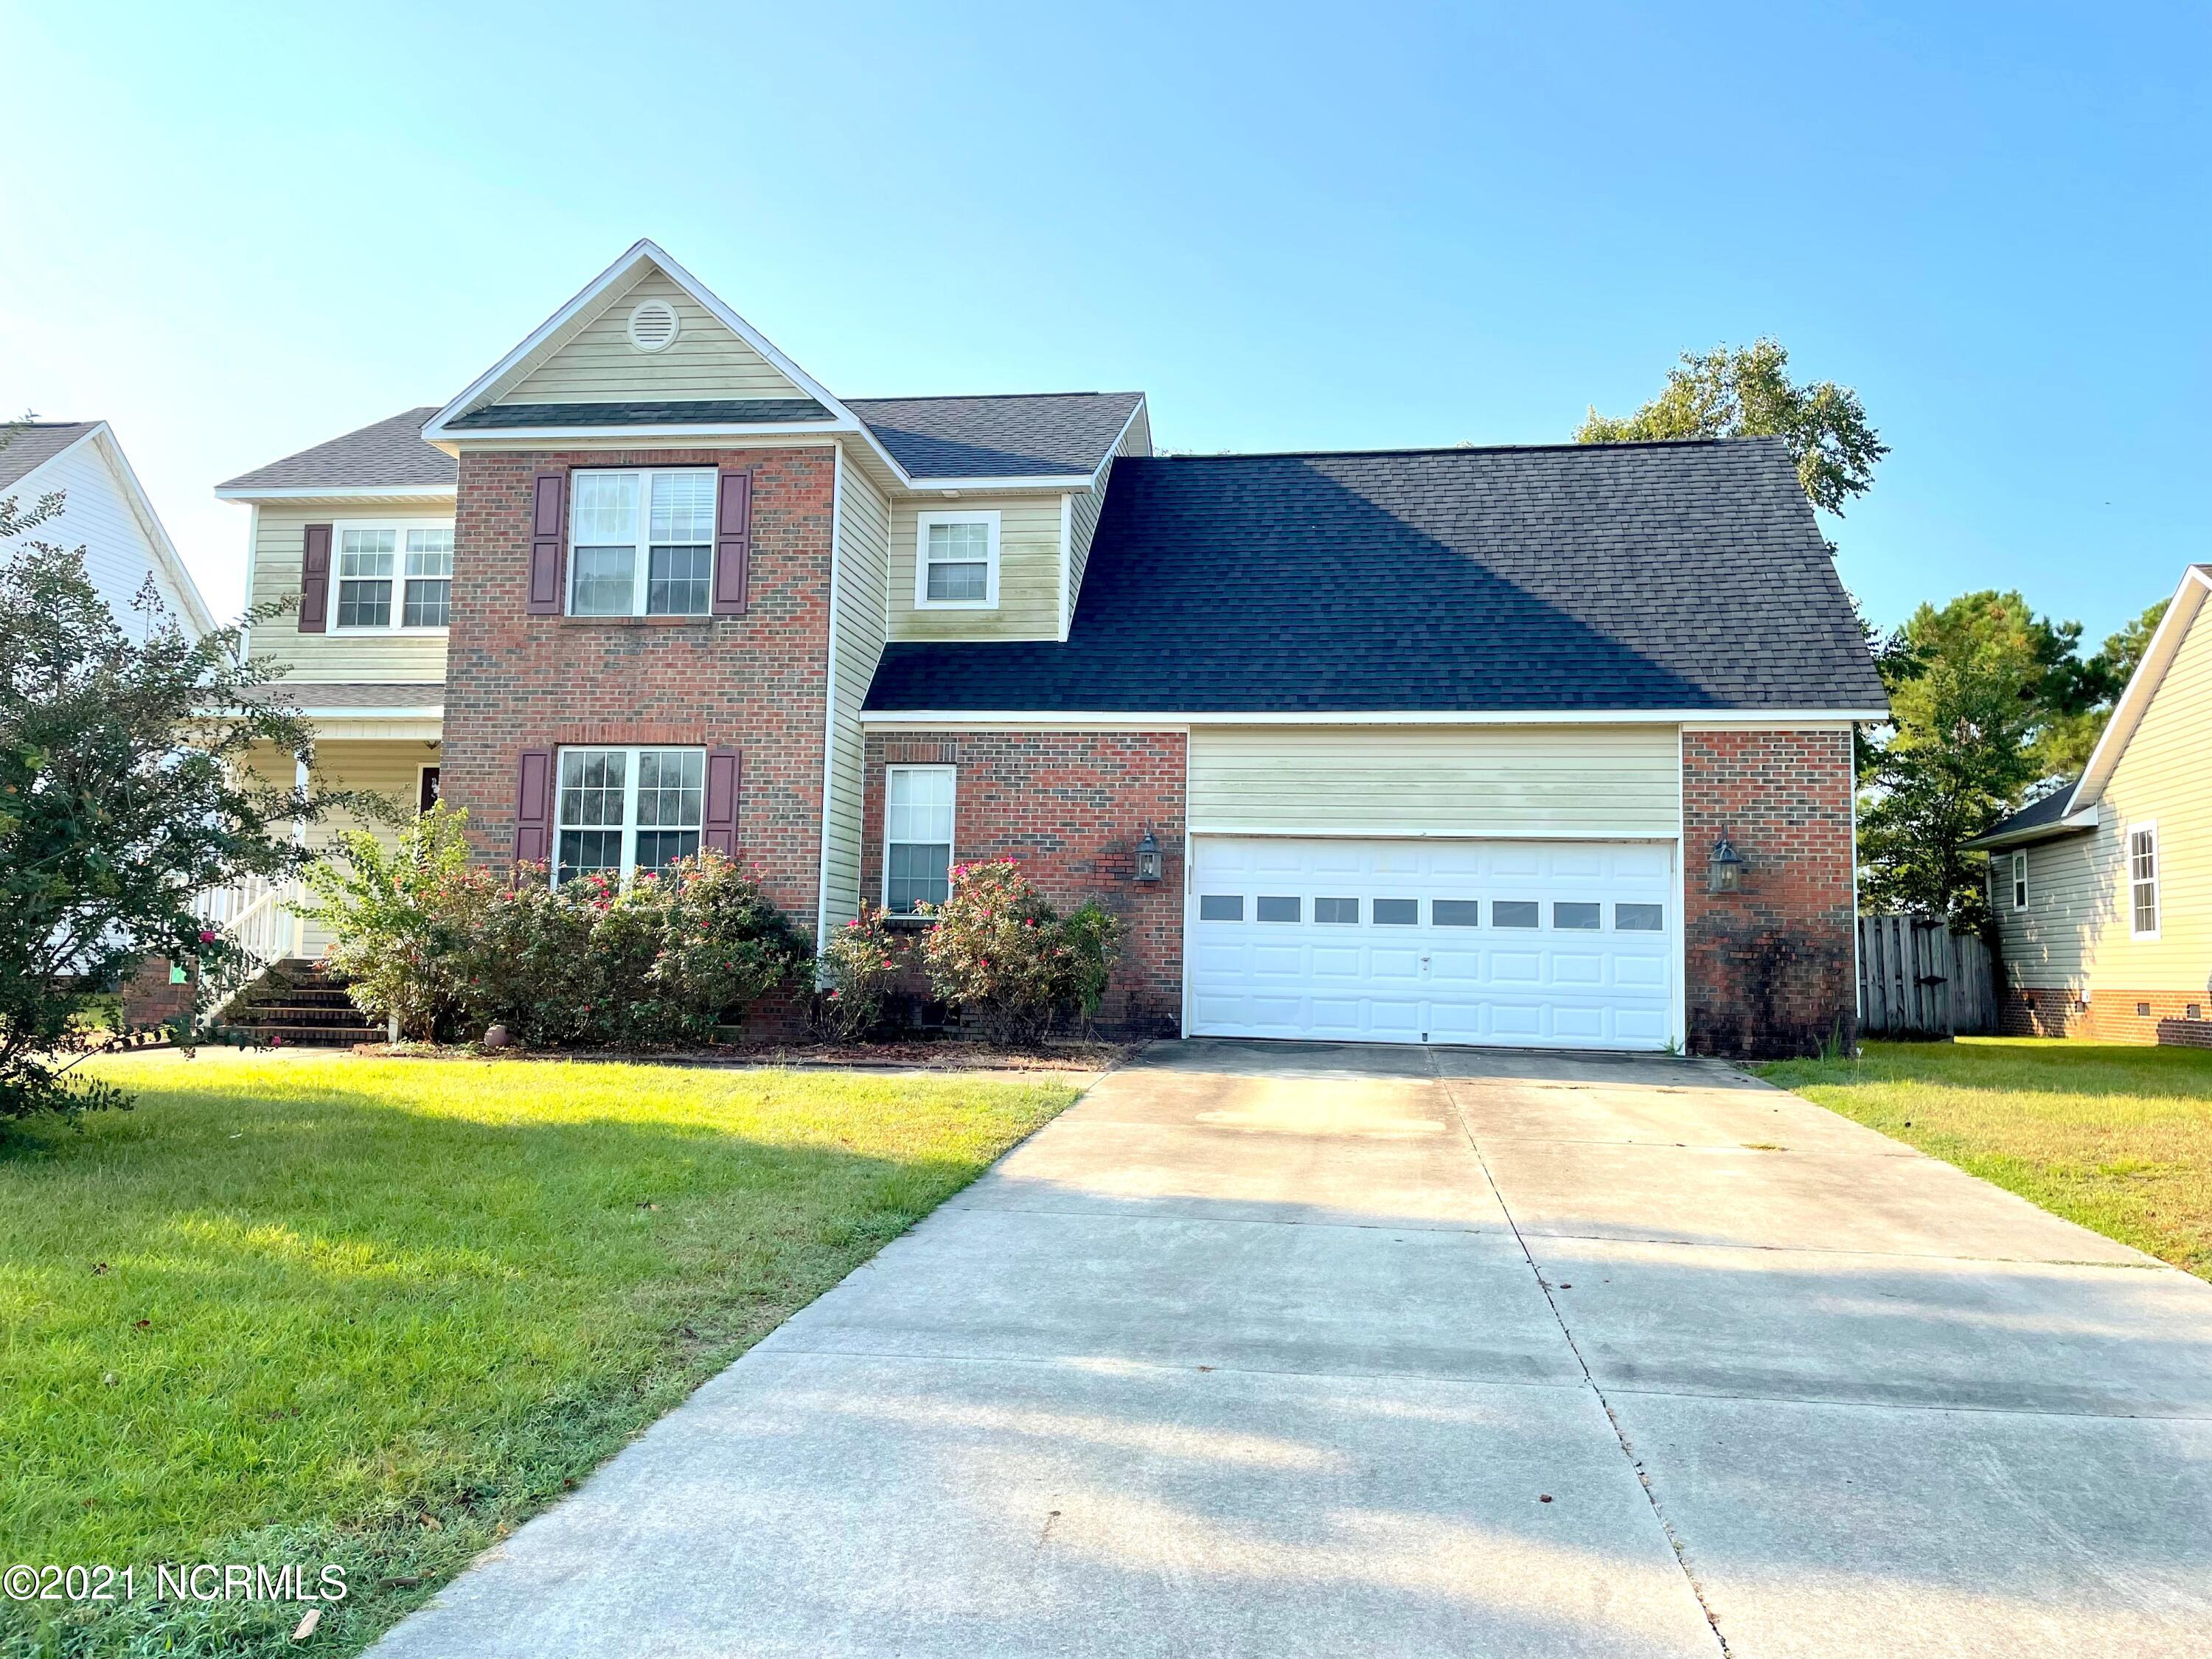 If you are looking for a house that you could make your own then come see 212 Lansing Court in Williamsburg Plantations! With just a little TLC, this home will be absolutely amazing! It features 4 bedrooms, 2 and a half baths and just over 2200 heated square feet, plenty of room for your personal touch! Located on a cul-de-sac and just minutes to Western Blvd, location is definitely a huge perk! Owners are offering an allowance to go towards repairs/updates/closing costs, which ever is preferred to any potential buyers. New roof installed in 2018 and HVAC replaced in 2019 by Kennedy Heating and Air. Take a peek and let your imagination design your dream home!